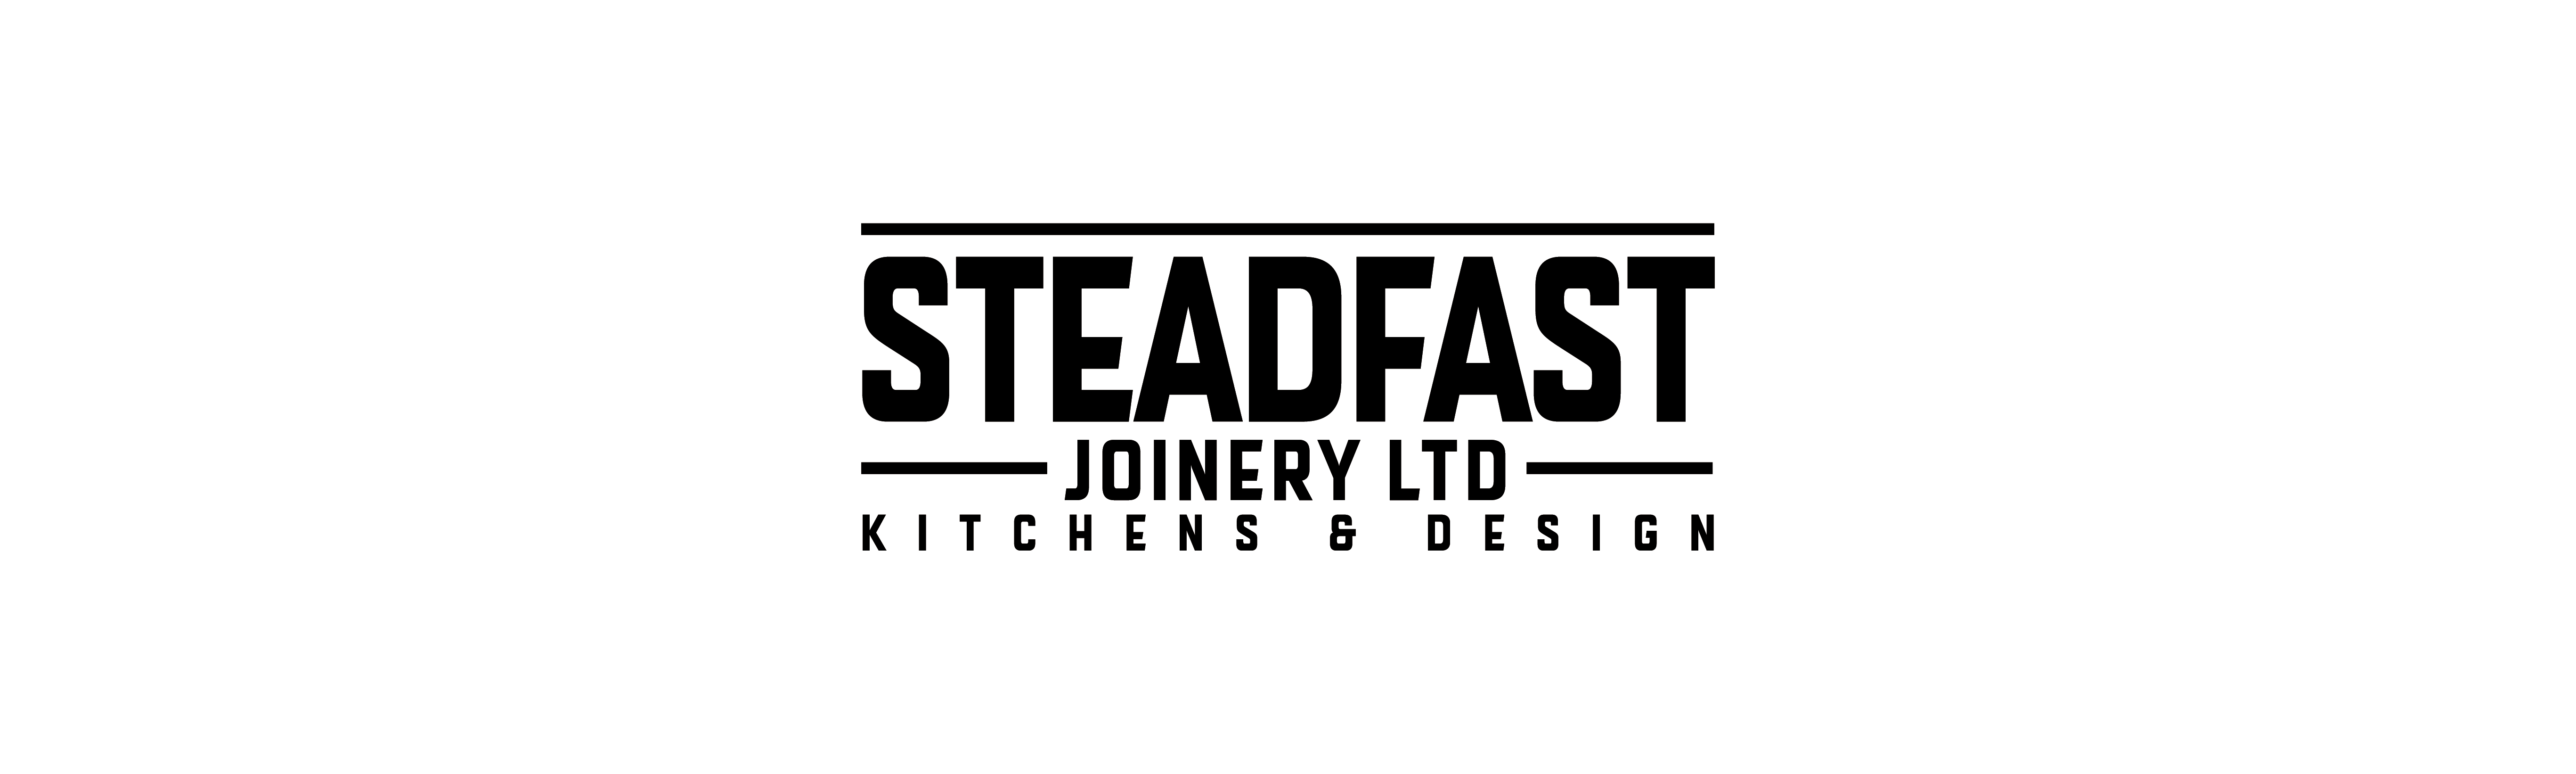 Steadfast Joinery Limited - Kitchens & Design